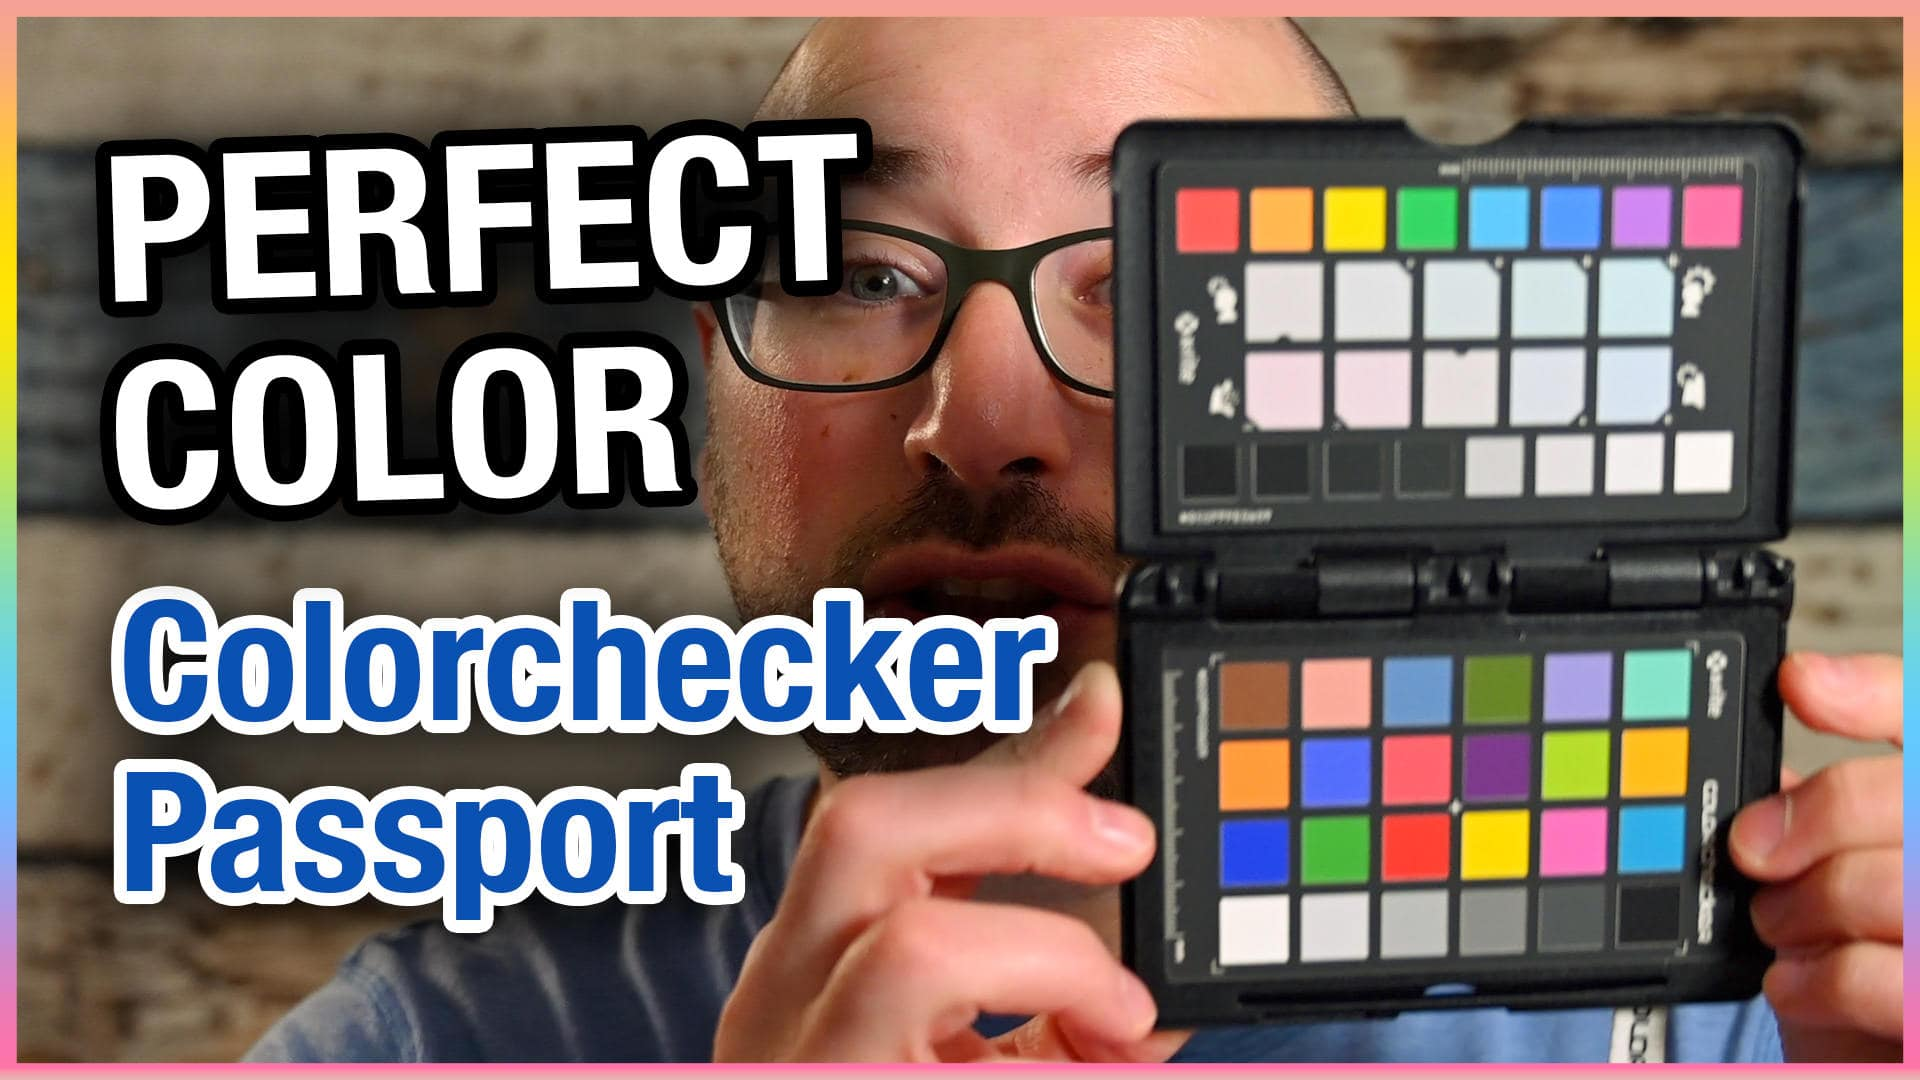 How to use ColorChecker Passport Photo for Perfect Color